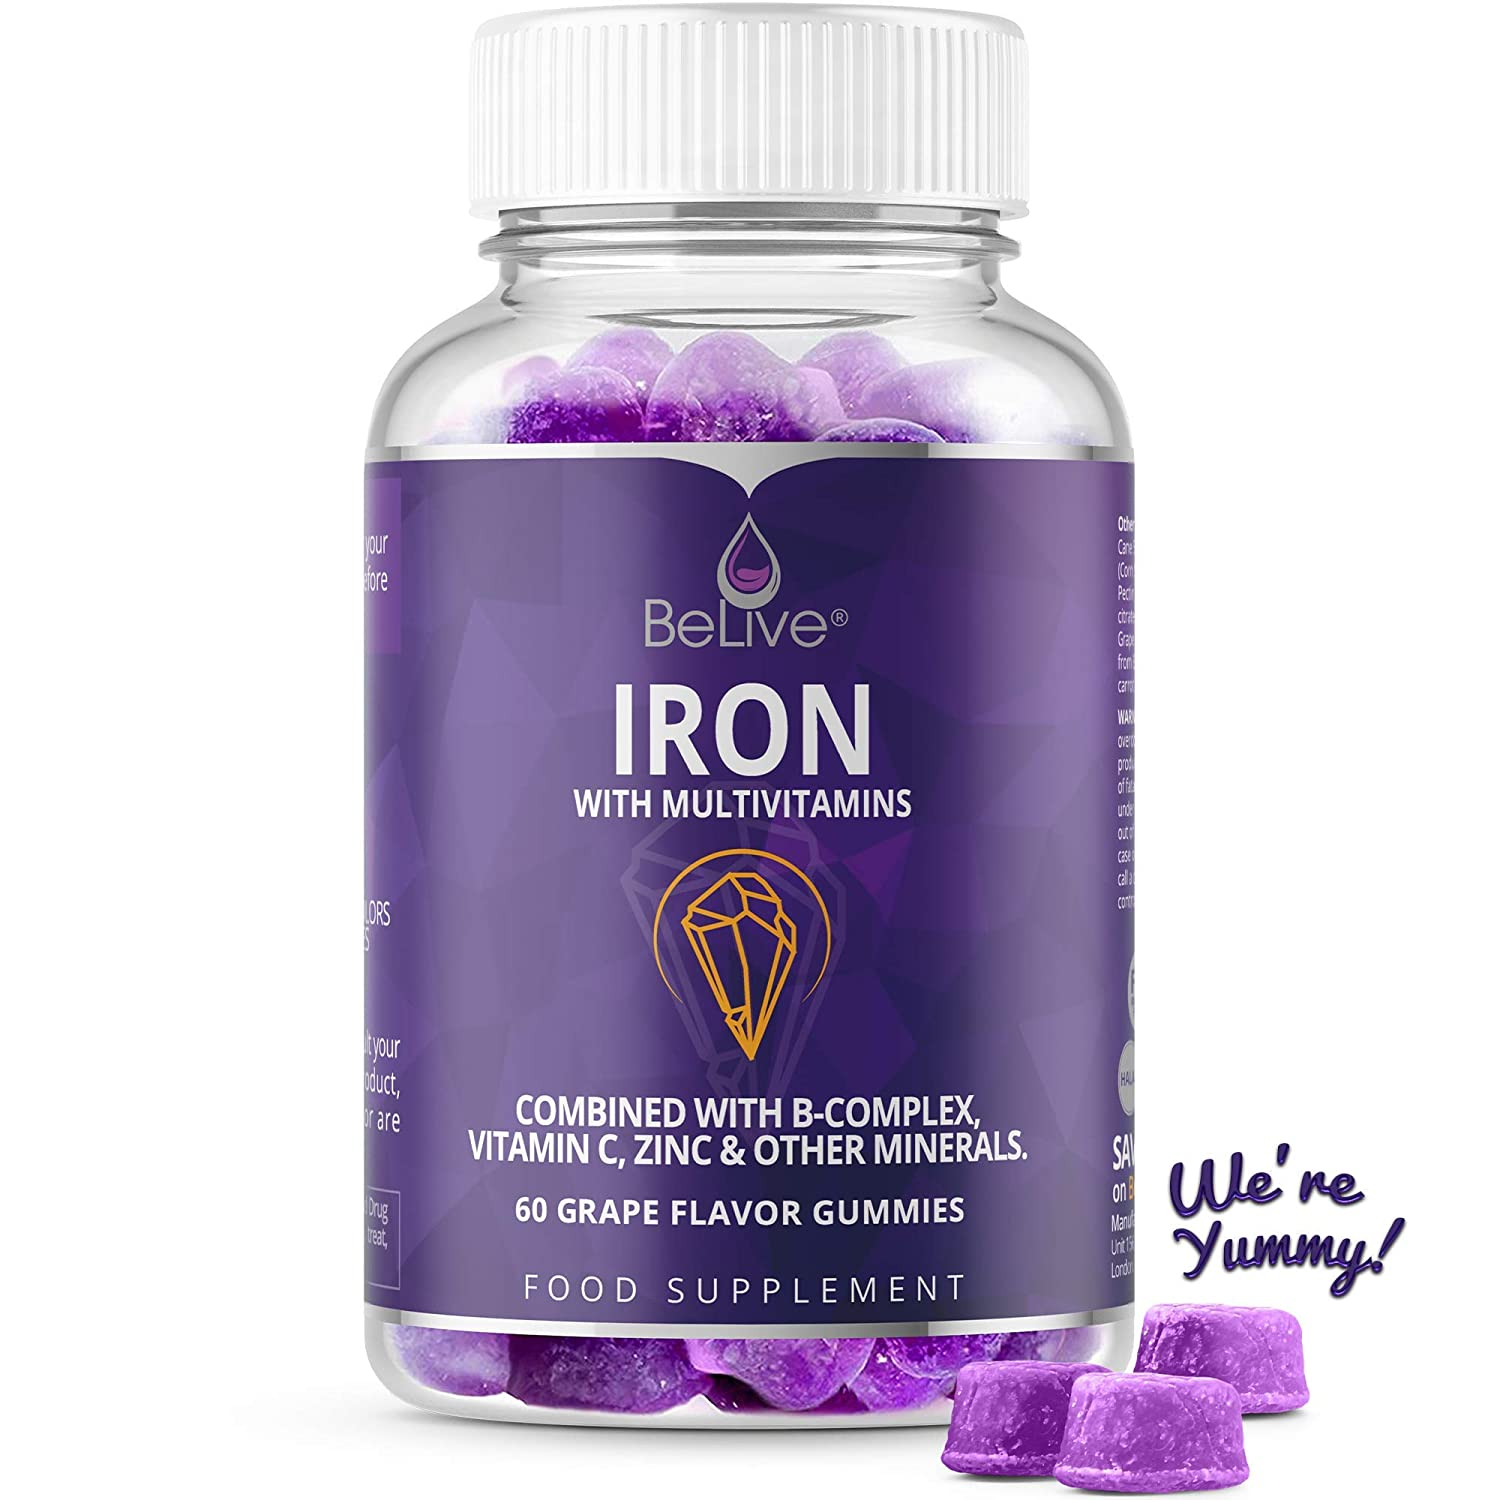 Iron Gummies with Vitamin C & A, Vitamins B Complex, Biotin, Zinc, Multivitamin for Kids and Adults - Helps with Anemia, Boosts Hemoglobin, Improves Brain Functions